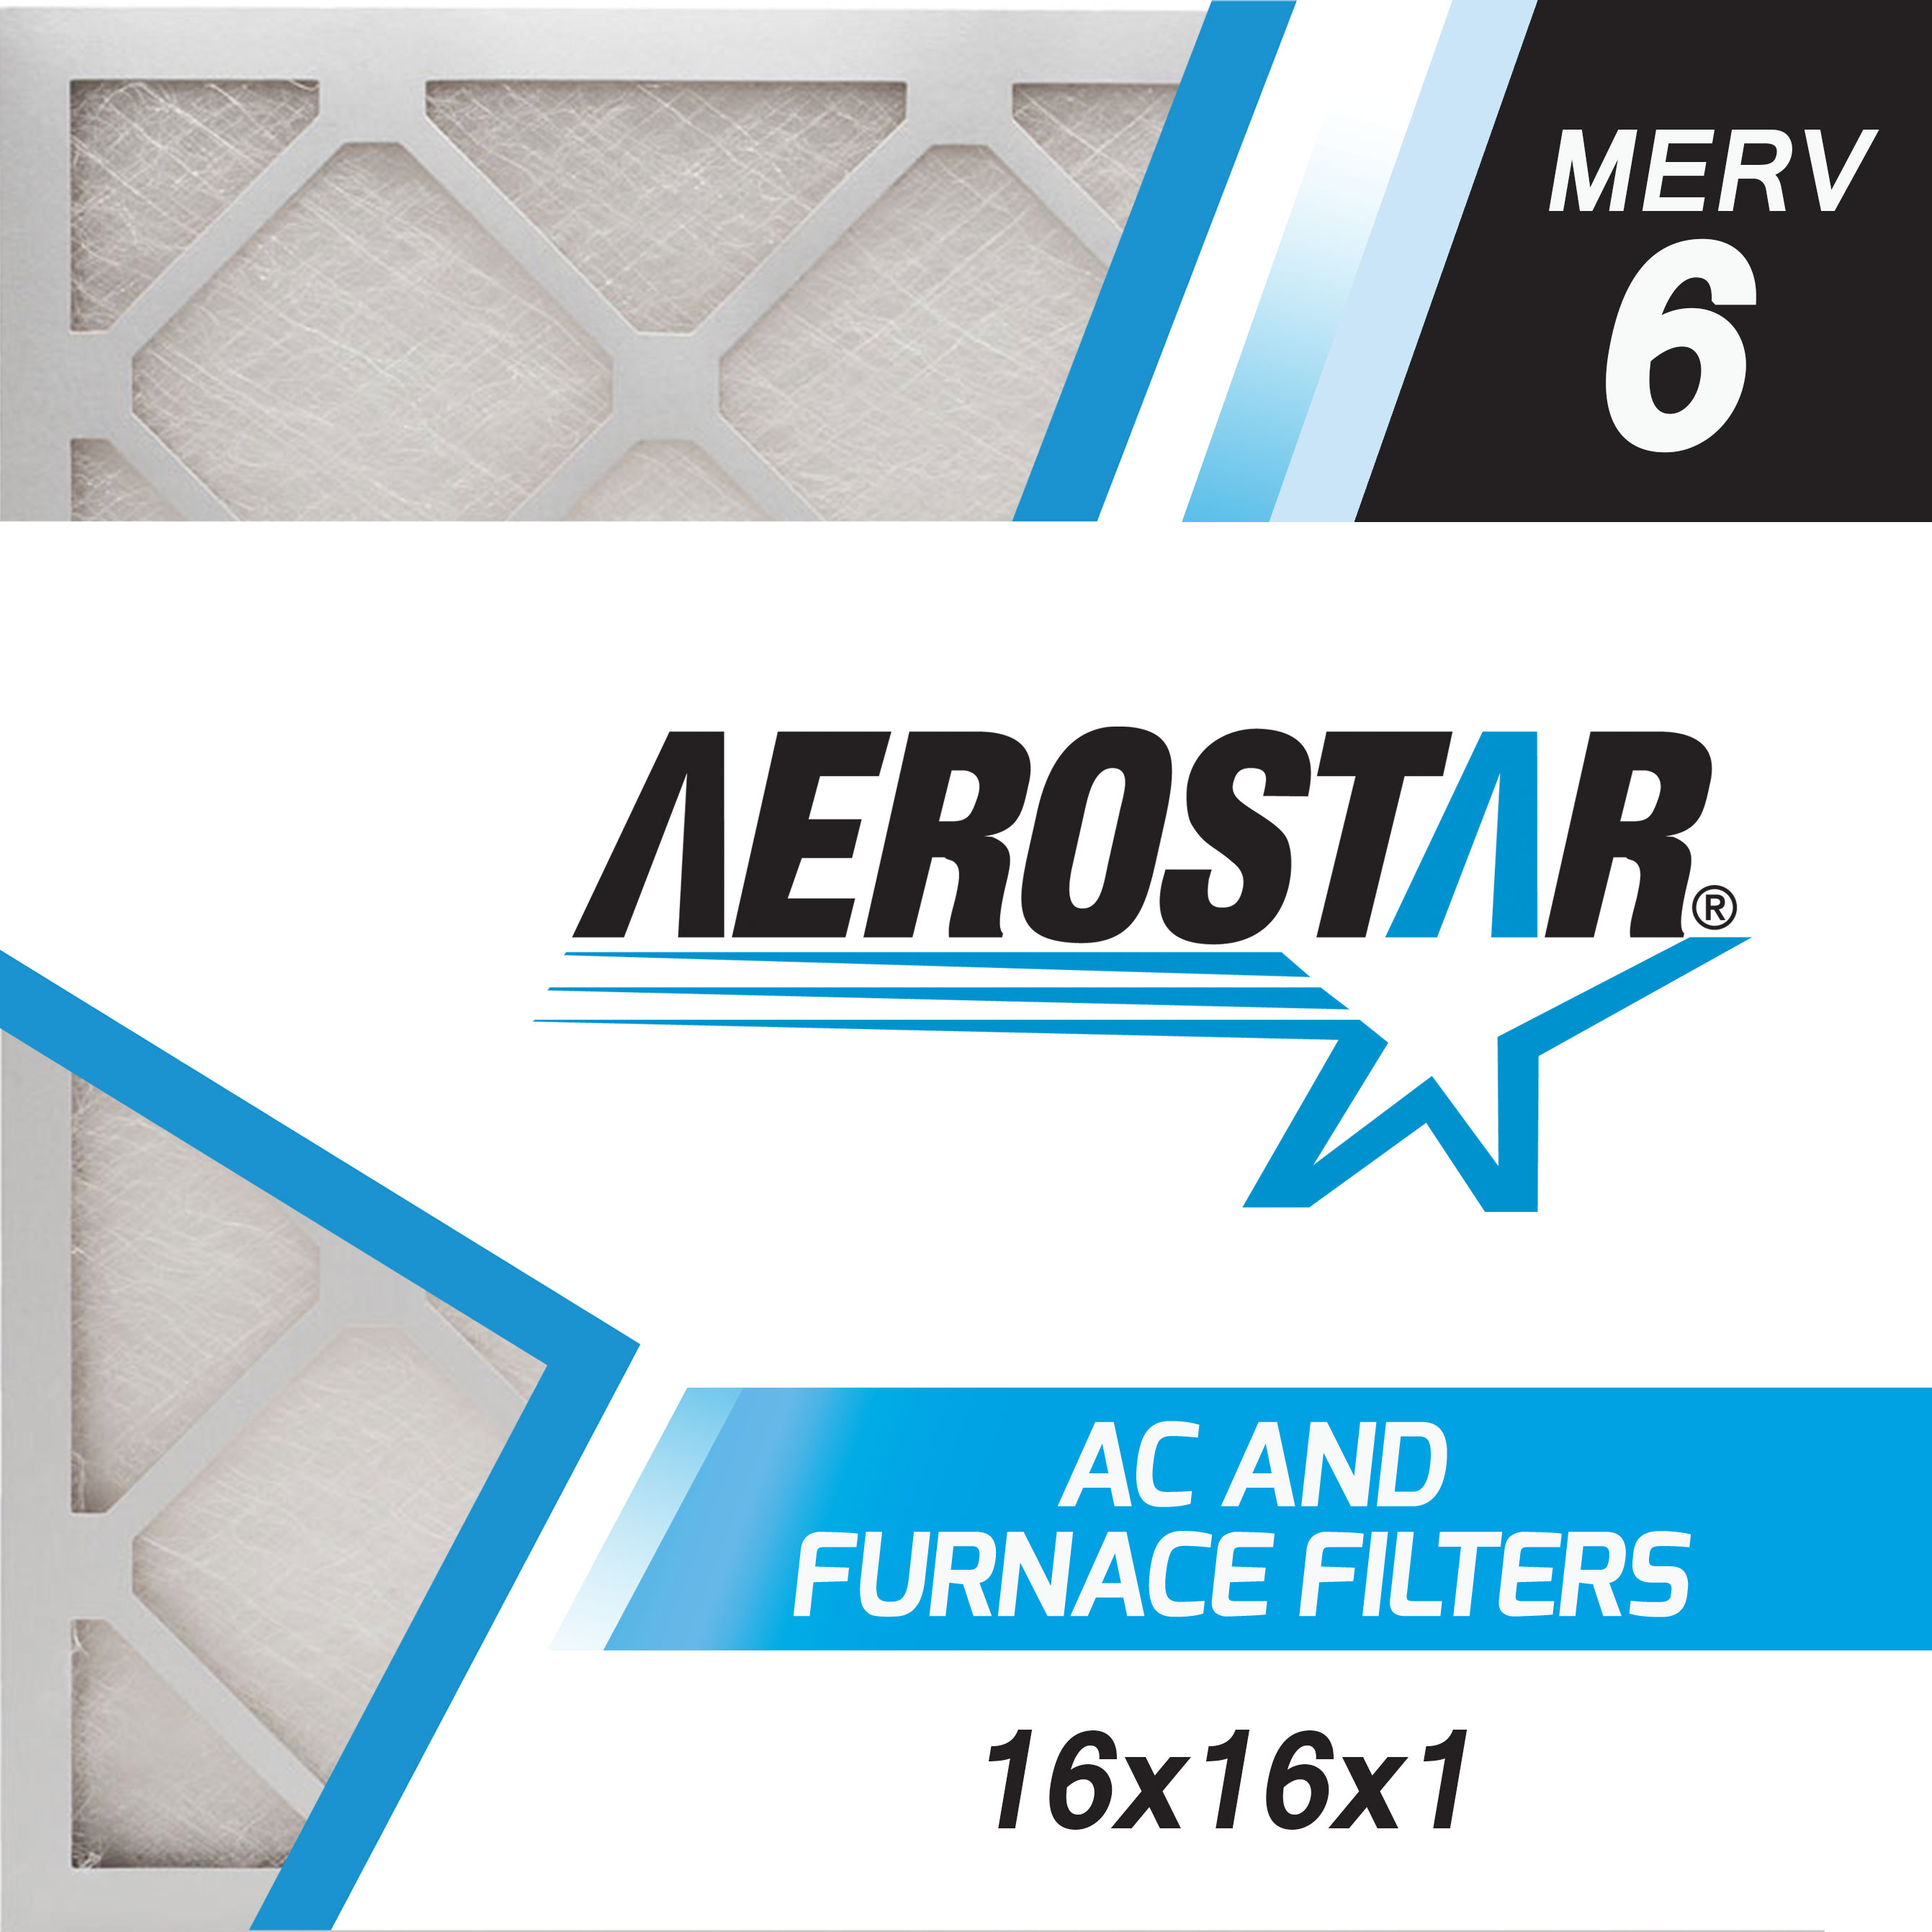 16x16x1 AC and Furnace Air Filter by Aerostar - MERV 6, Box of 6